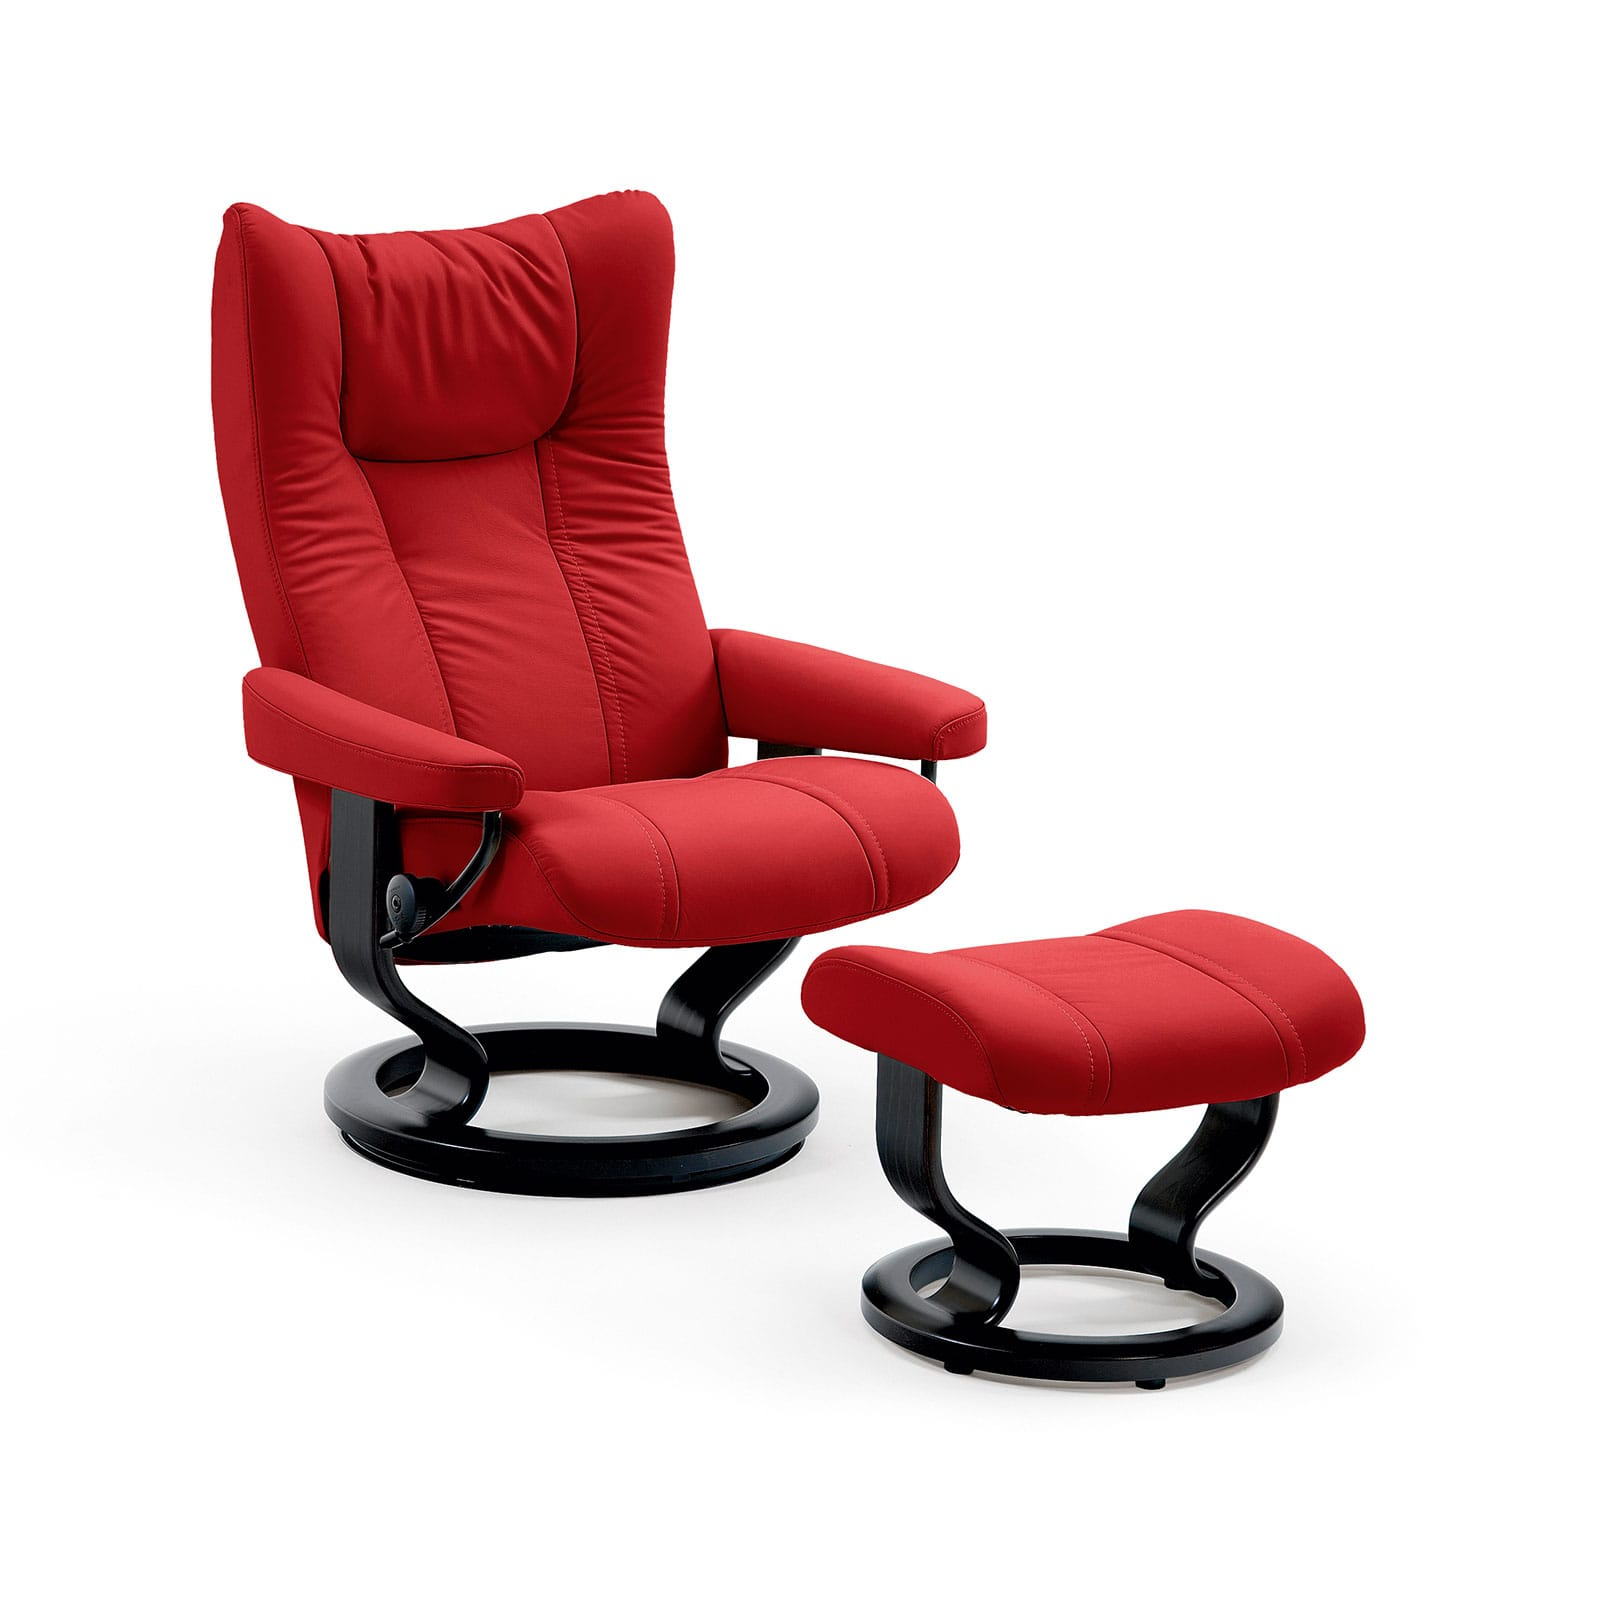 stressless sessel wing batick chilli red mit hocker. Black Bedroom Furniture Sets. Home Design Ideas